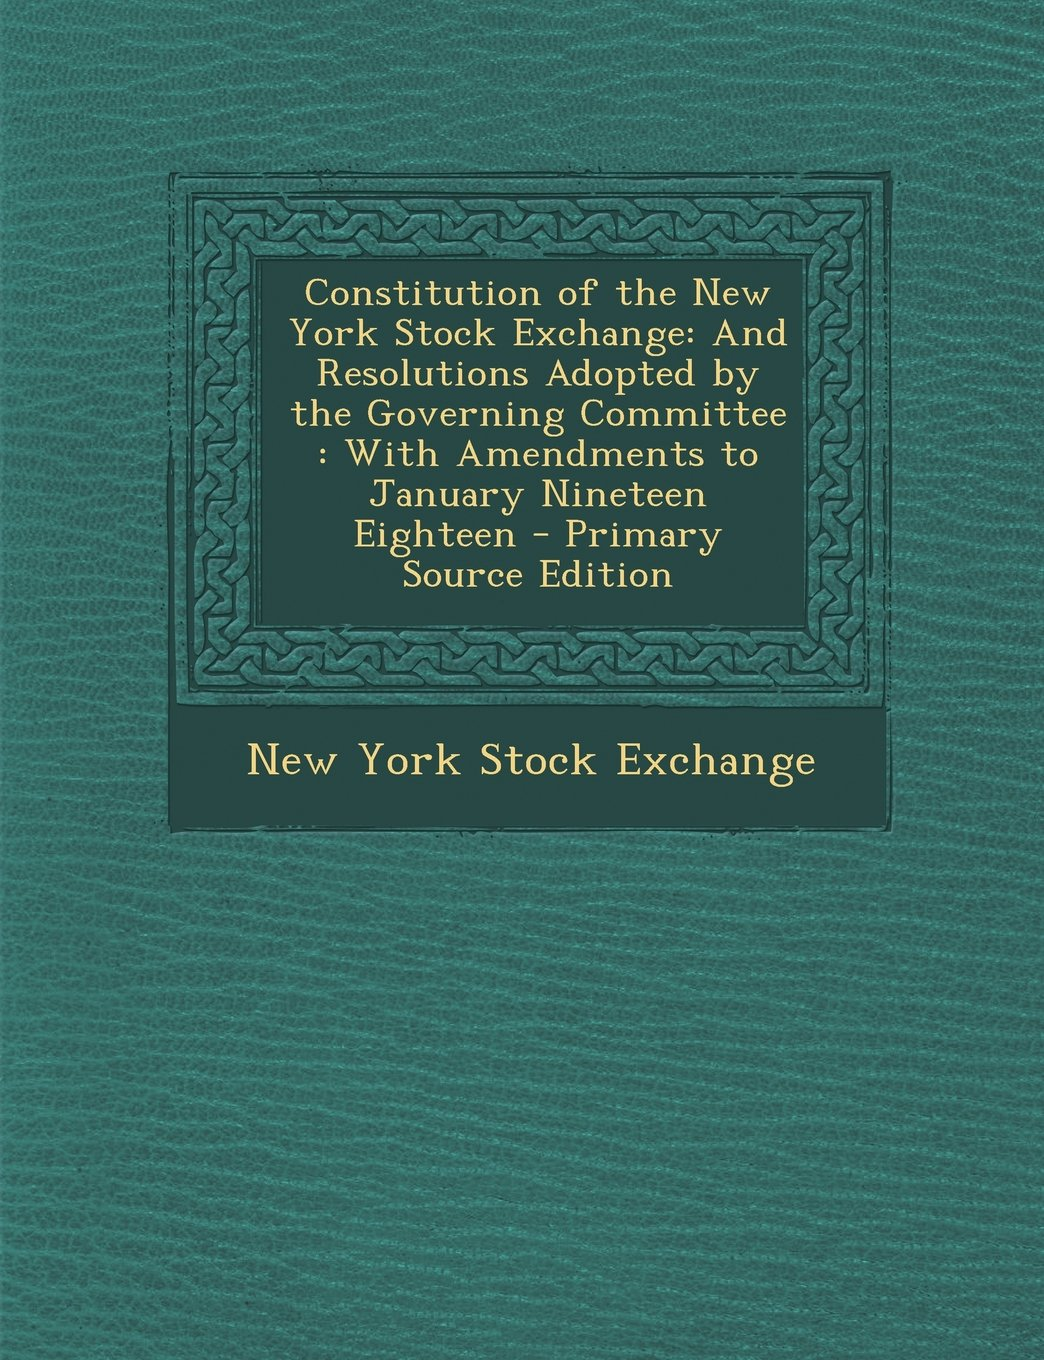 Constitution of the New York Stock Exchange: And Resolutions Adopted by the Governing Committee: With Amendments to January Nineteen Eighteen - Primar ebook